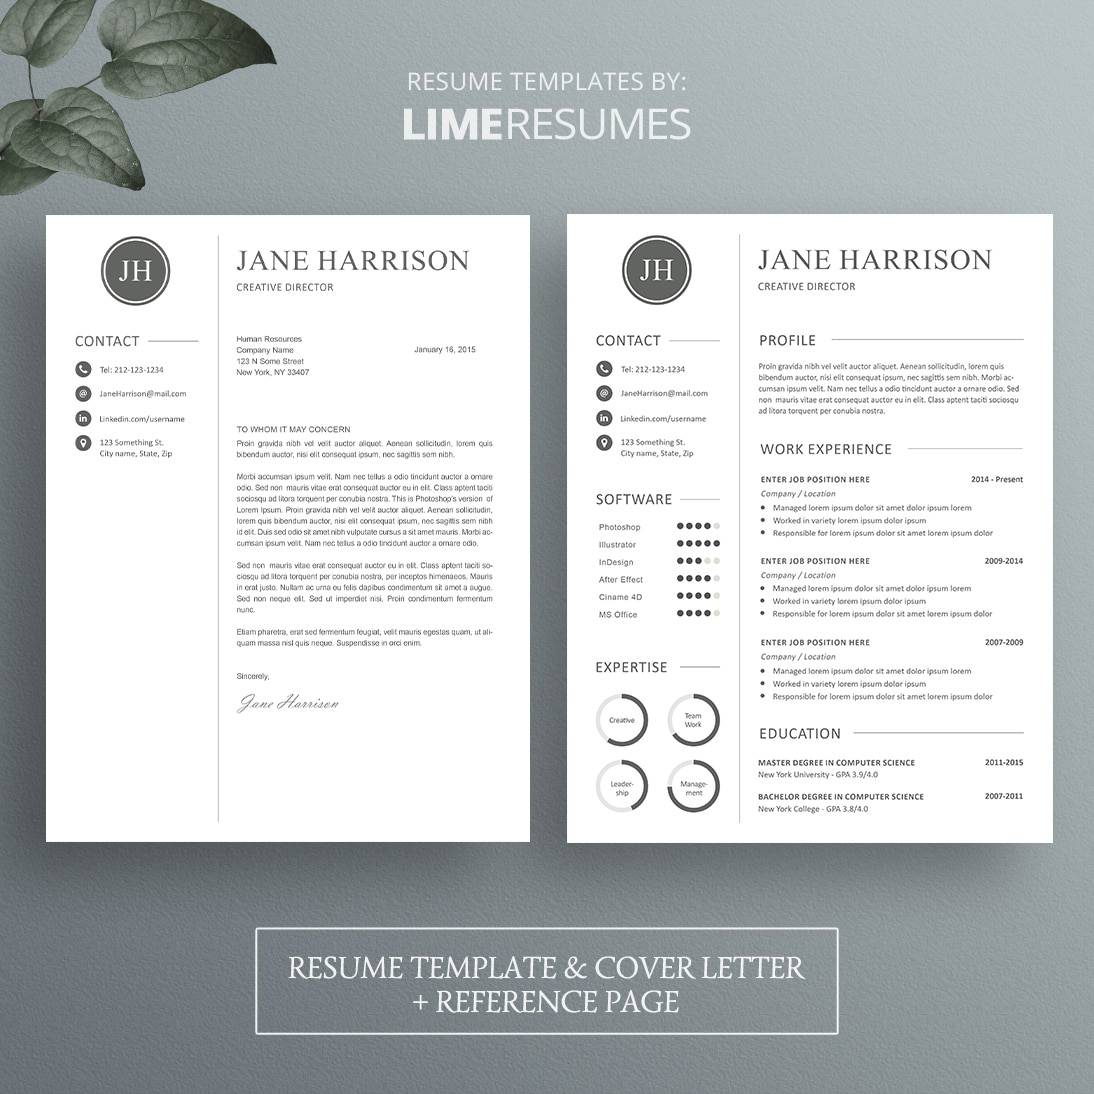 cover letter resume reference page